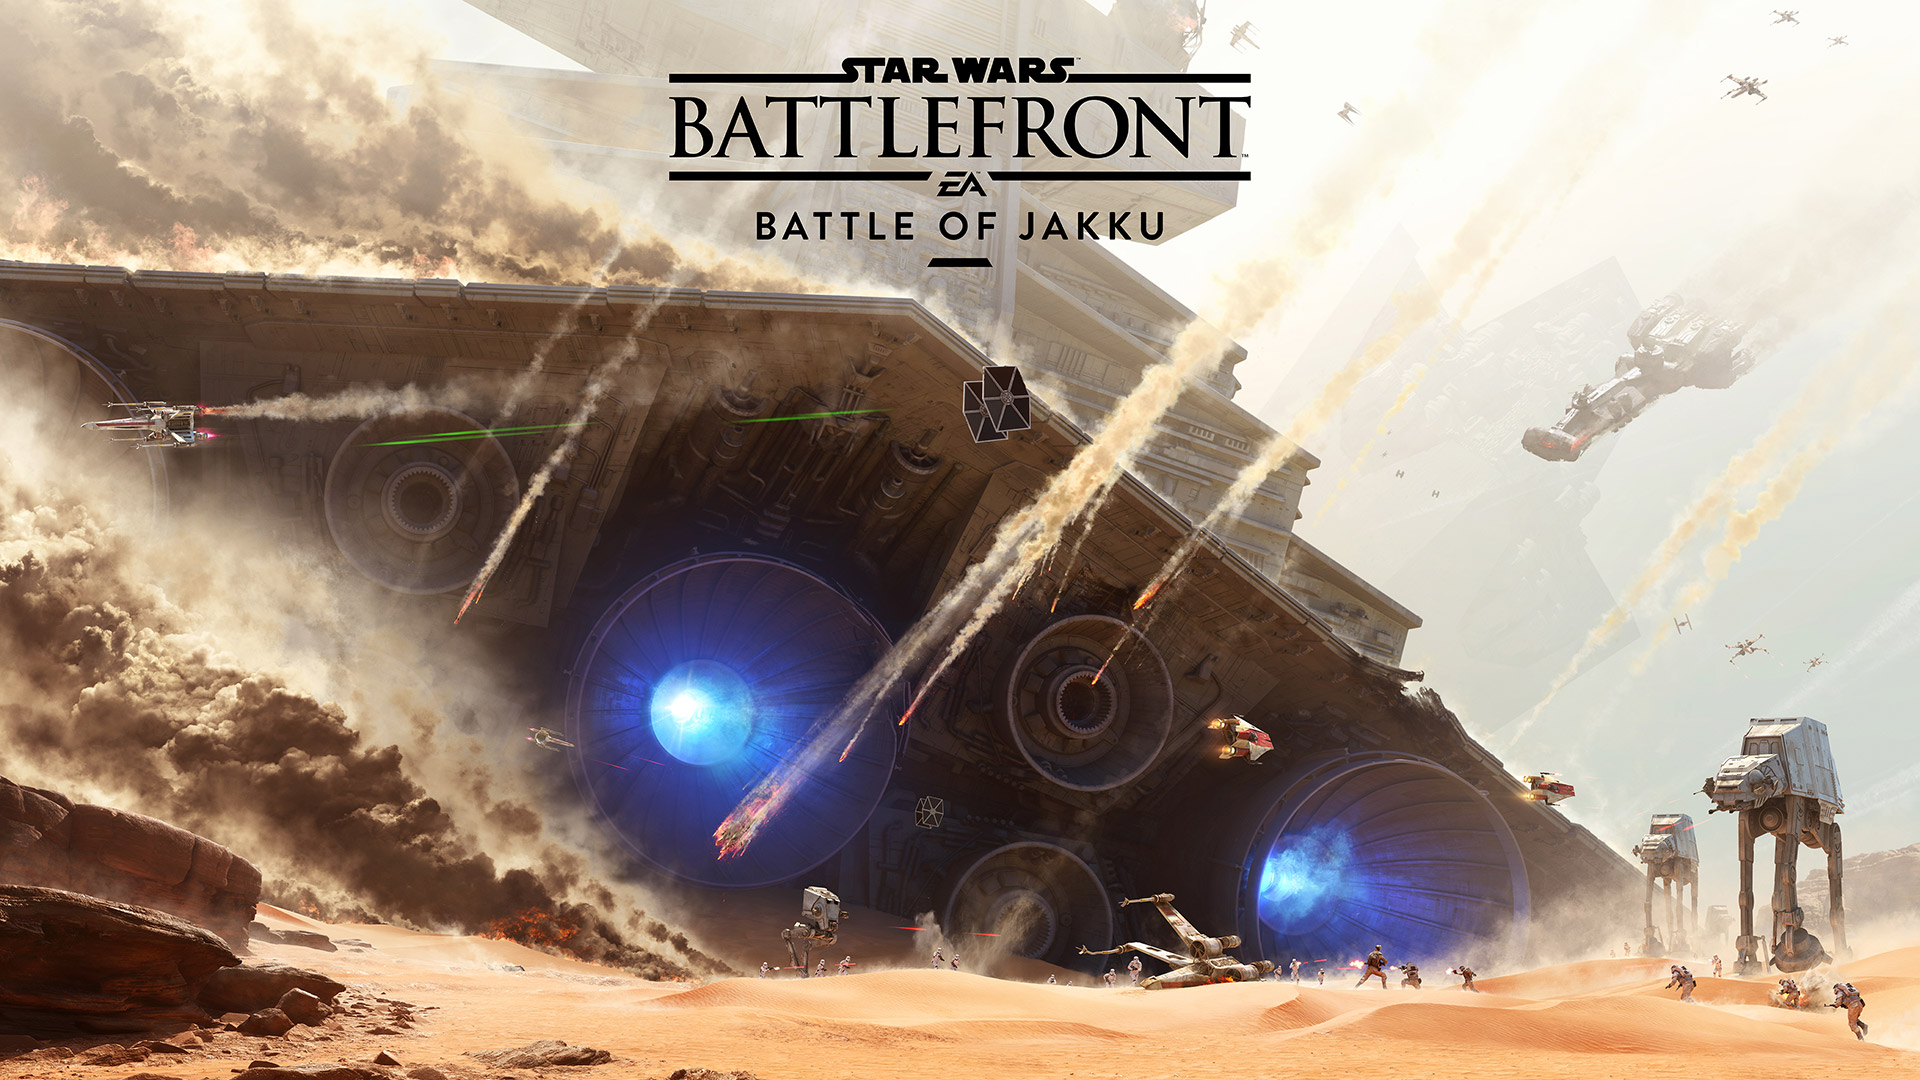 featuredImage.img  Star Wars Battlefront Sequel Confirmed, Will Tie In To New Movies